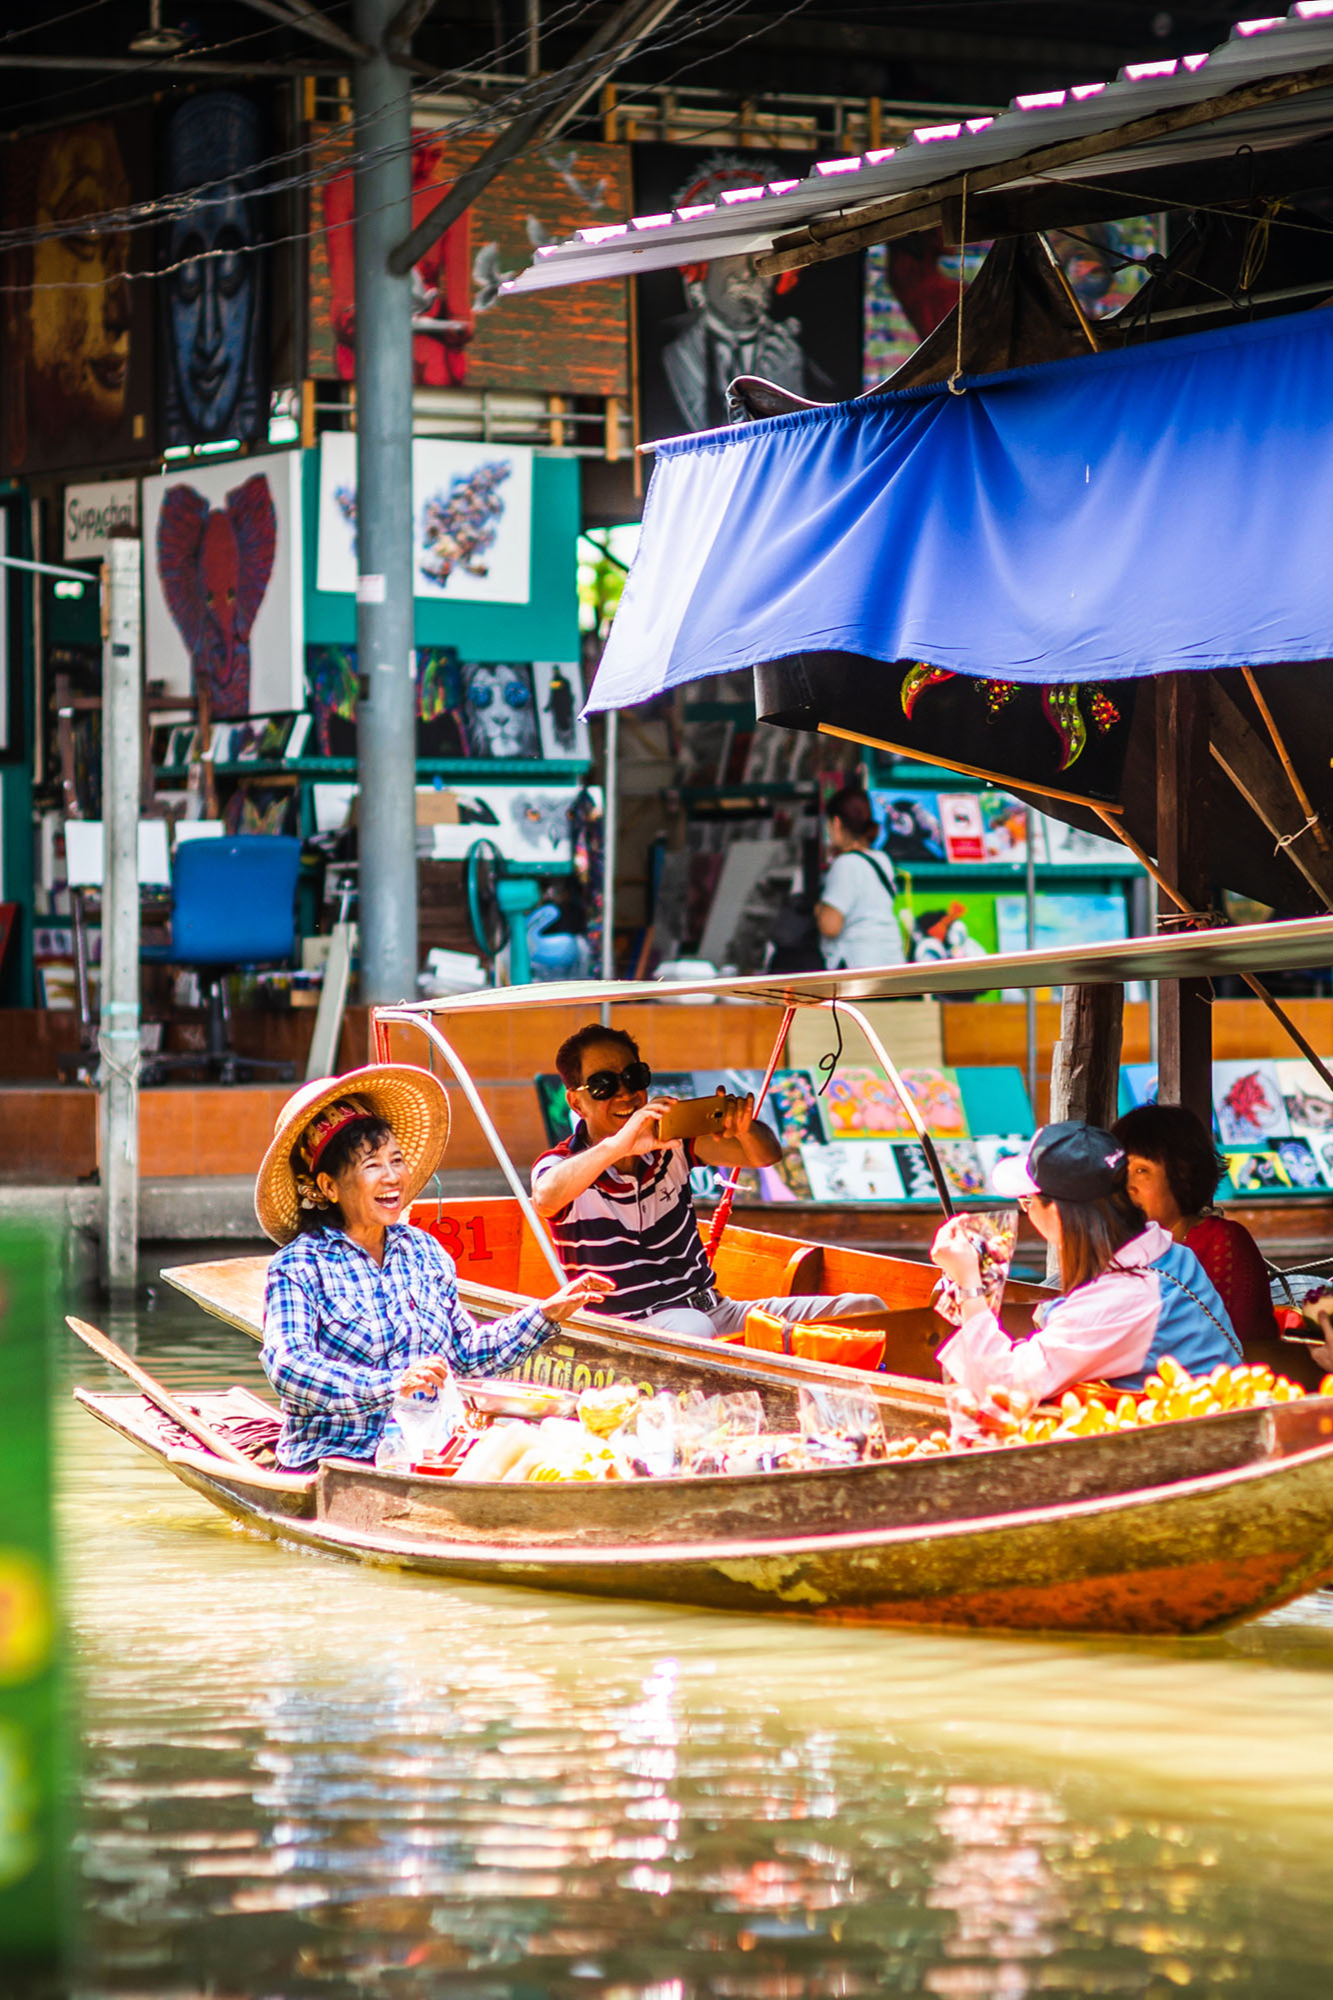 The atmosphere at floating market.